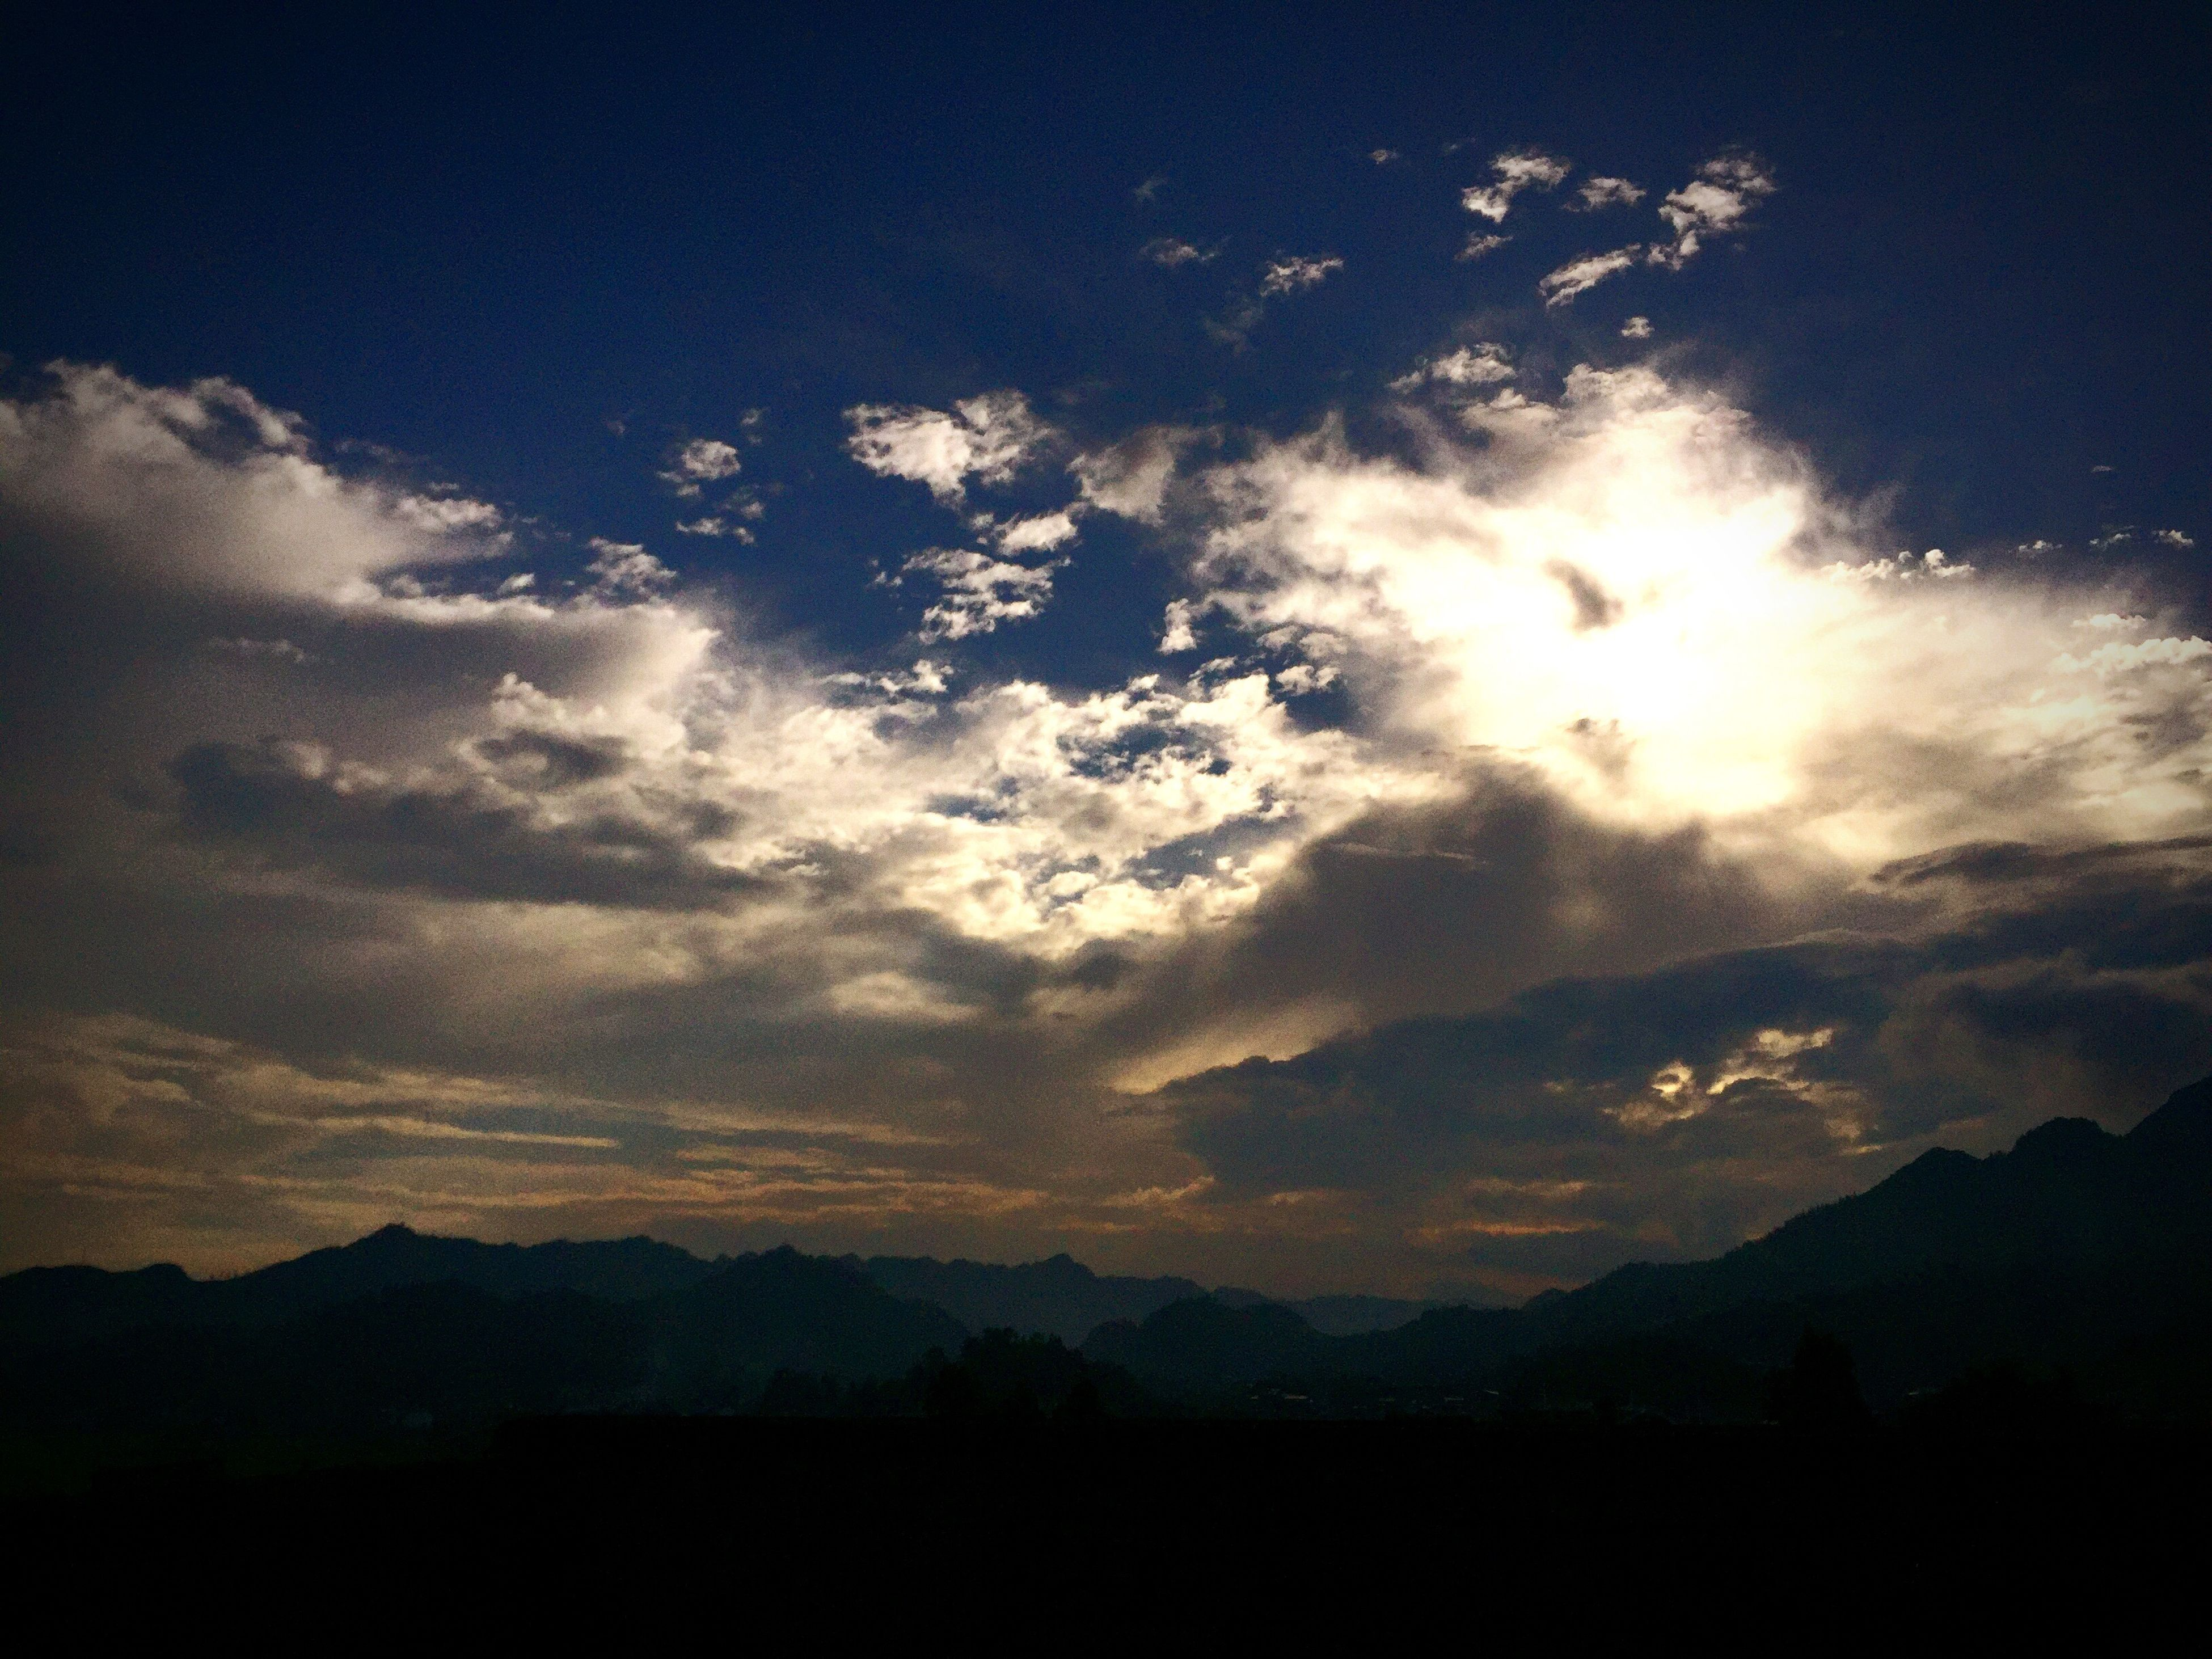 sky, cloud - sky, silhouette, sunset, sunbeam, beauty in nature, dramatic sky, no people, nature, outdoors, scenics, day, astronomy